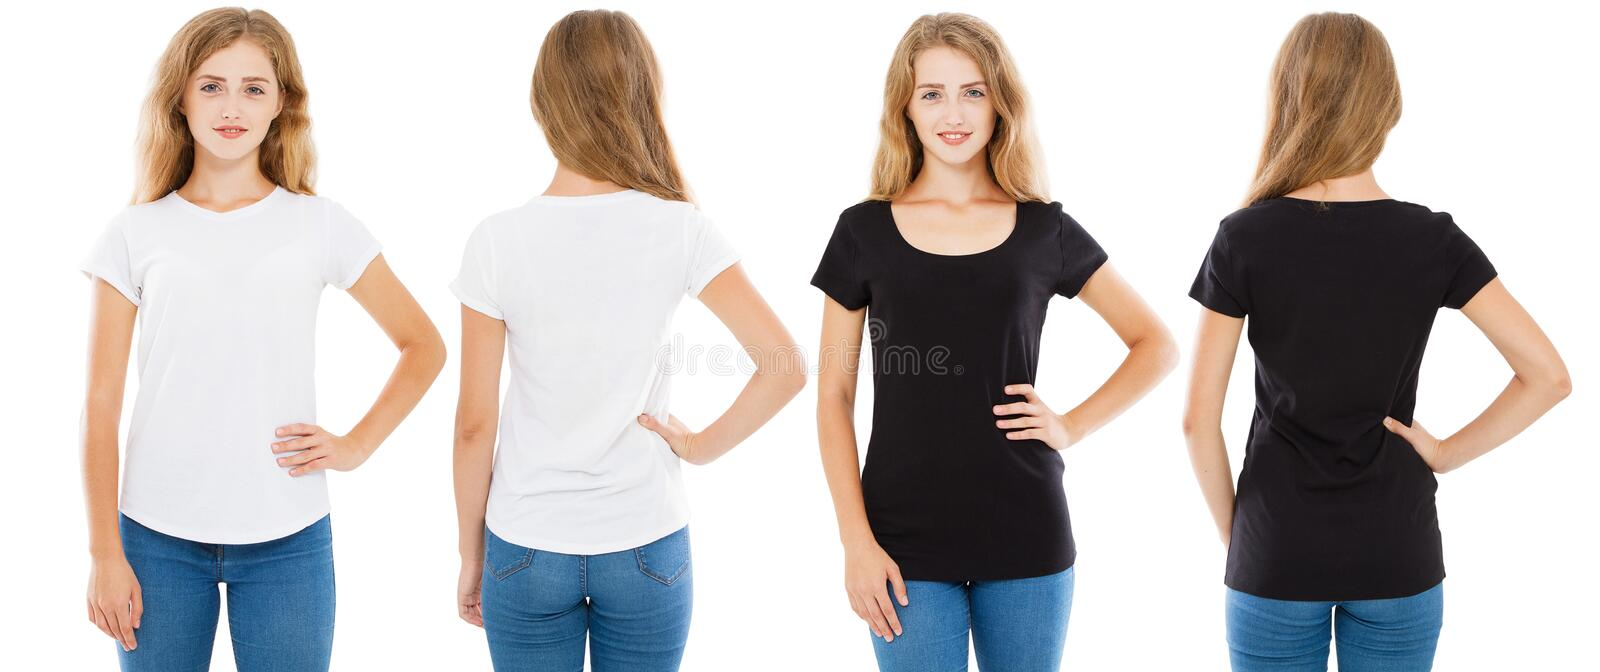 Set front and back views woman in white t-shirt and black t shirt isolated, girl tshirt.  stock photo